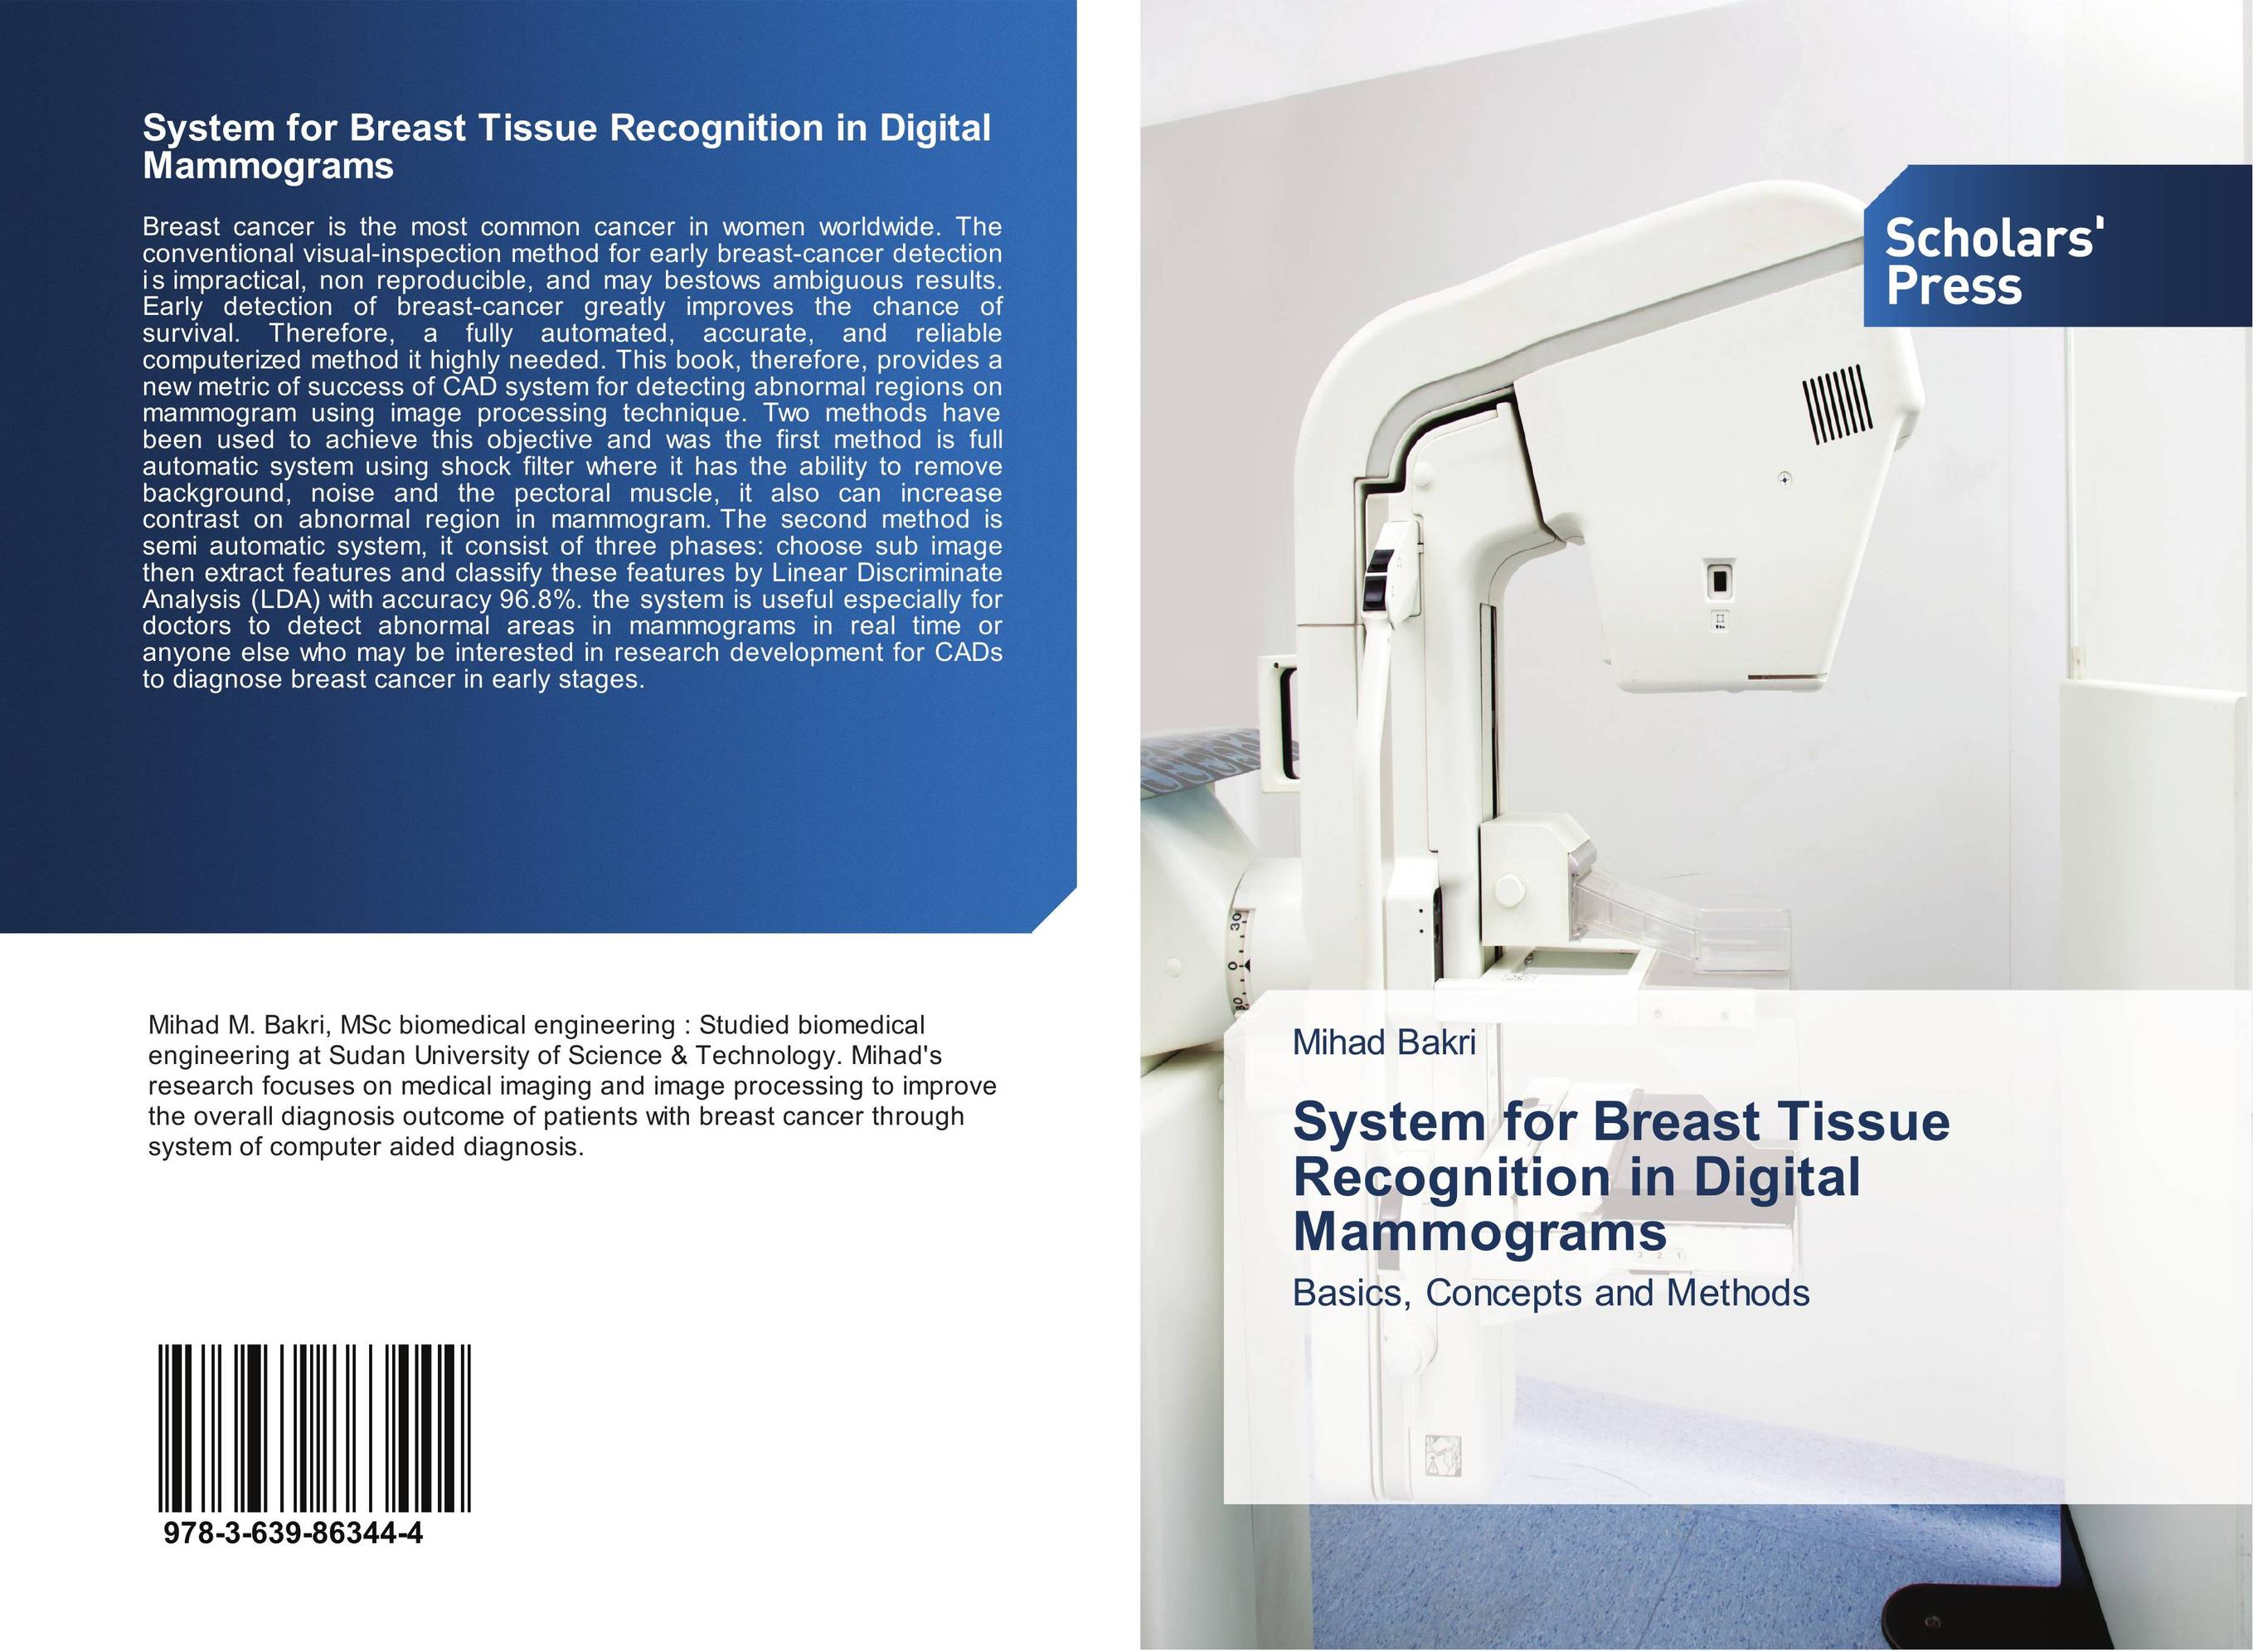 System for Breast Tissue Recognition in Digital Mammograms breast cancer detection device for the breast check and breast cancer self exam